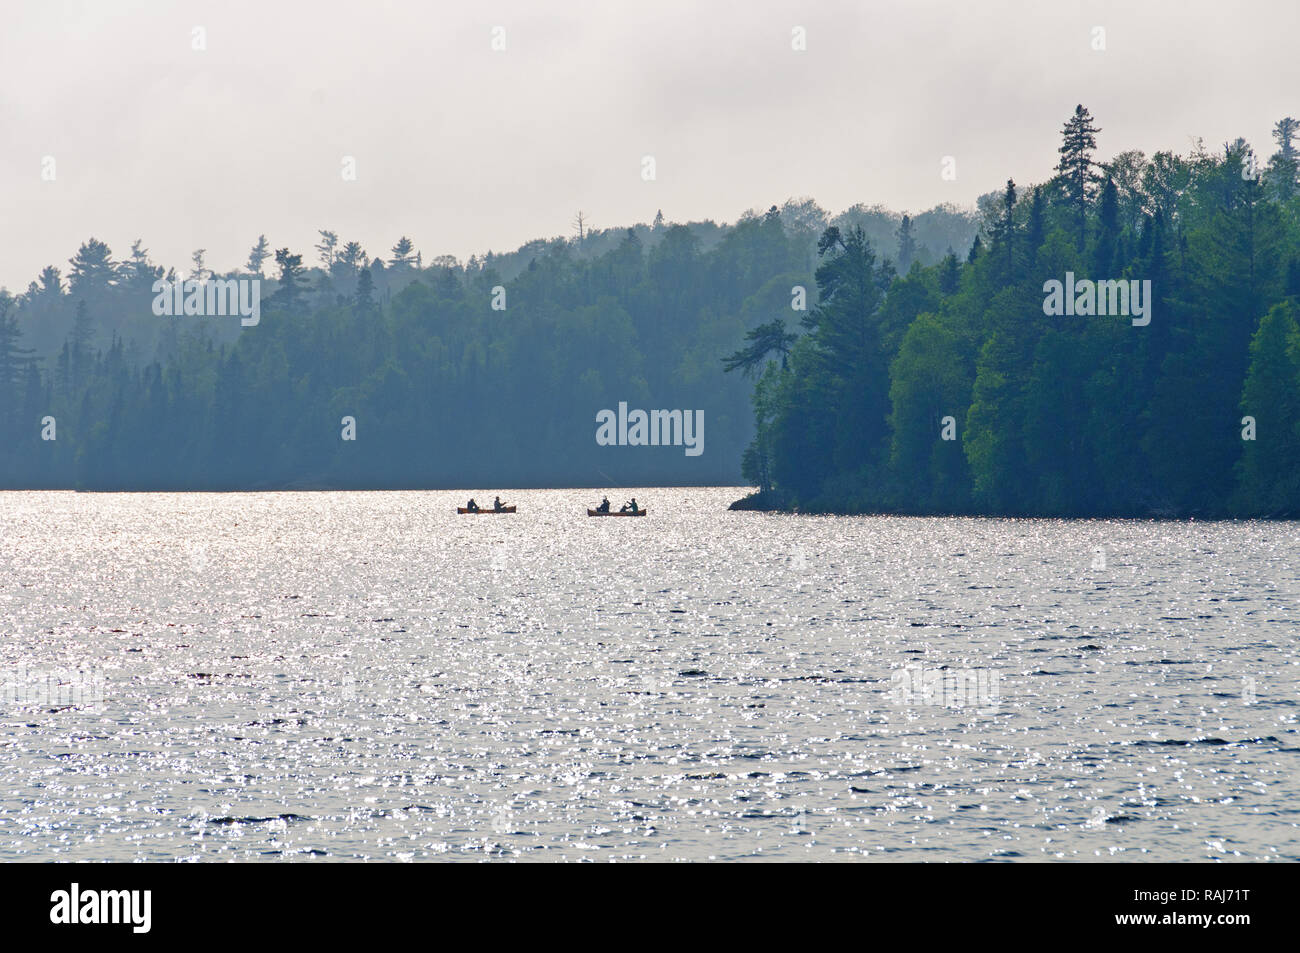 Fishermen silhouetted on Winchell Lake in the Boundary Waters - Stock Image